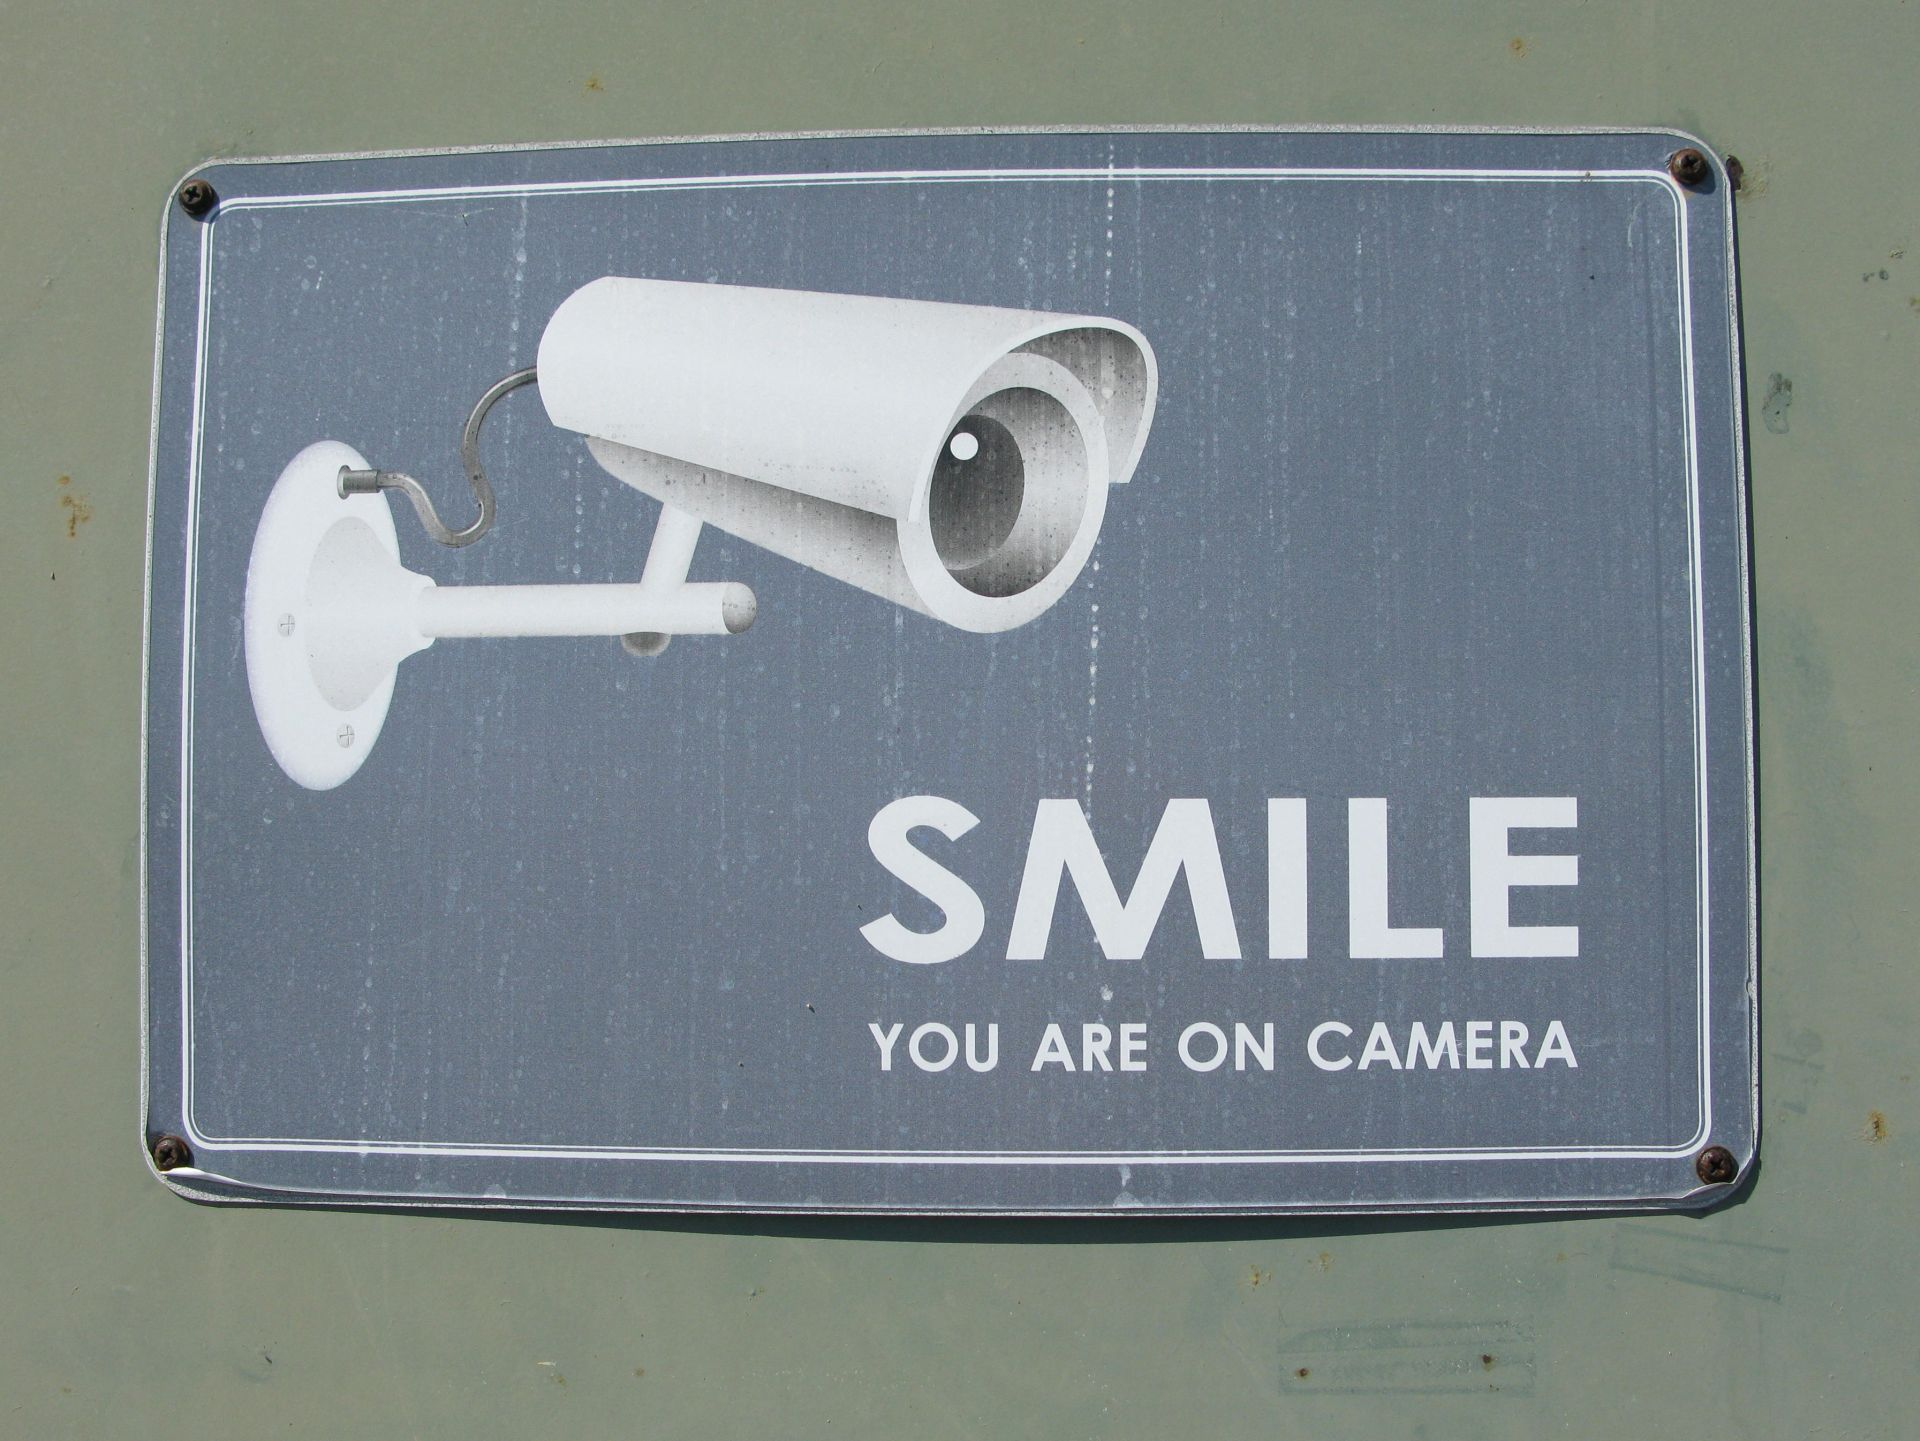 Smile_You_Are_On_Camera.jpg